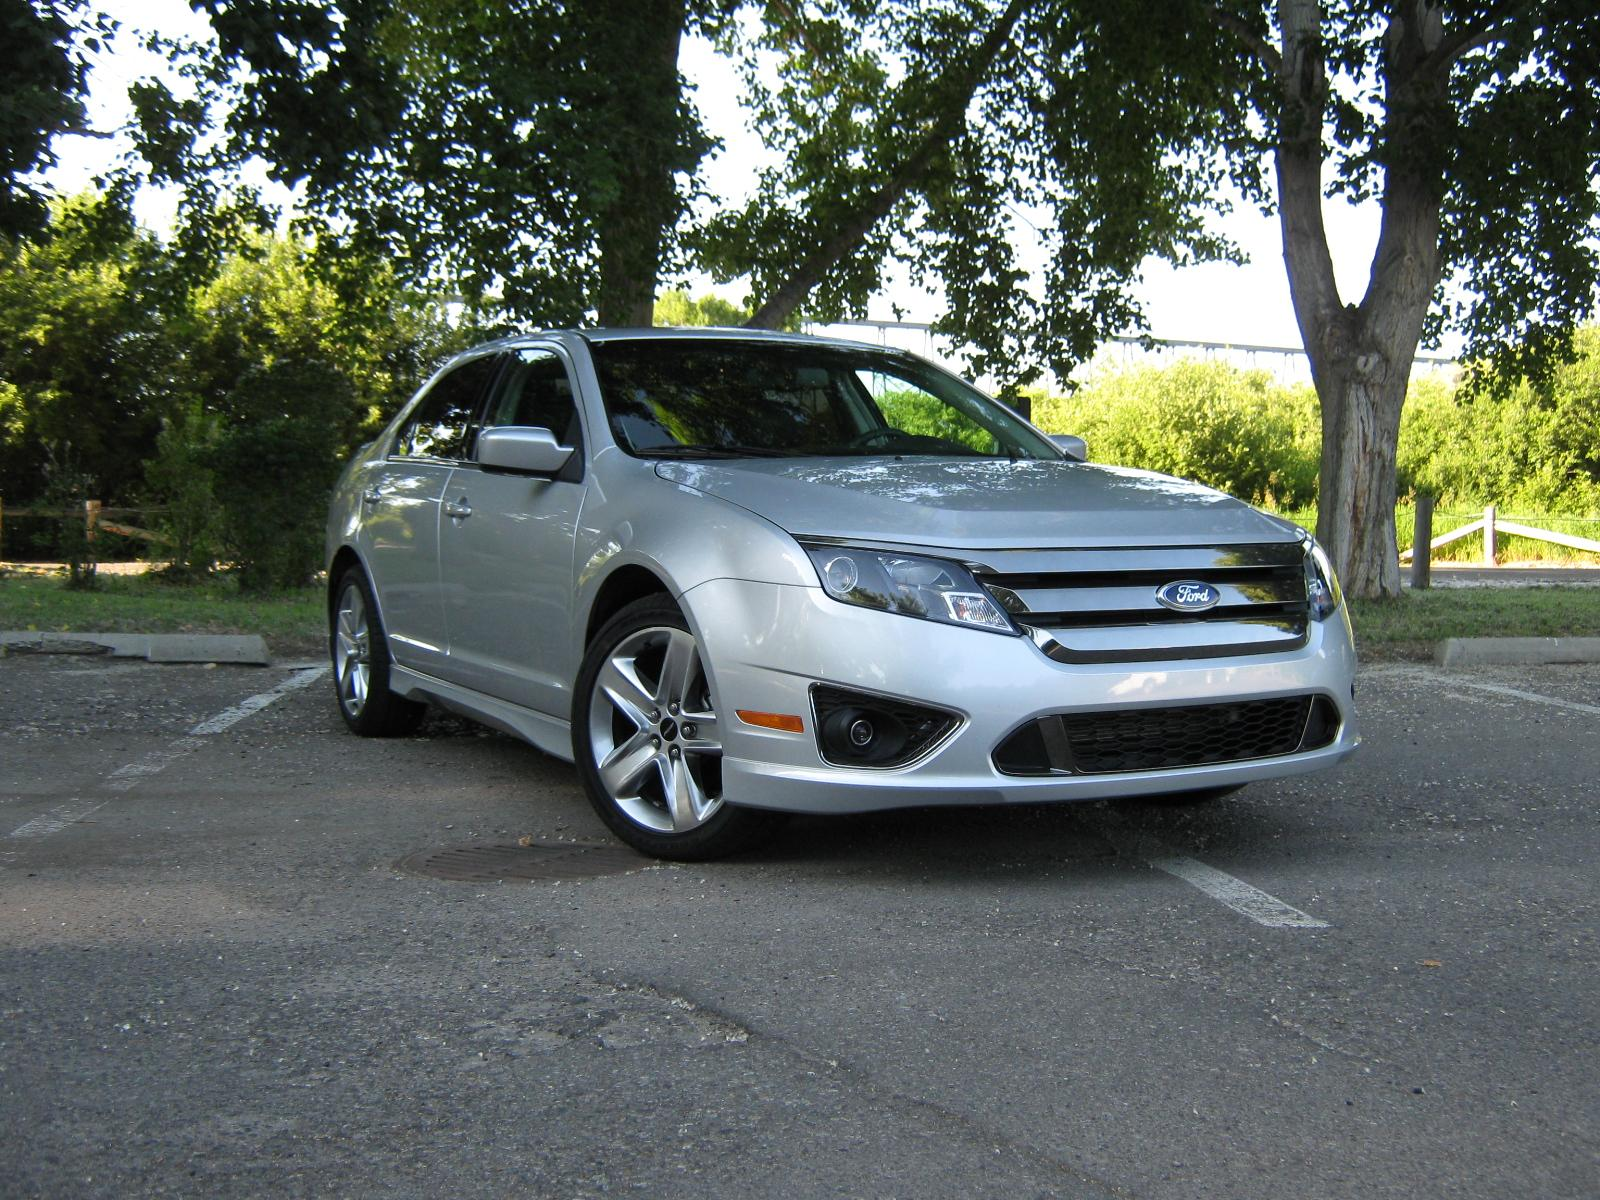 equipe2500 2011 Ford Fusion 18844712